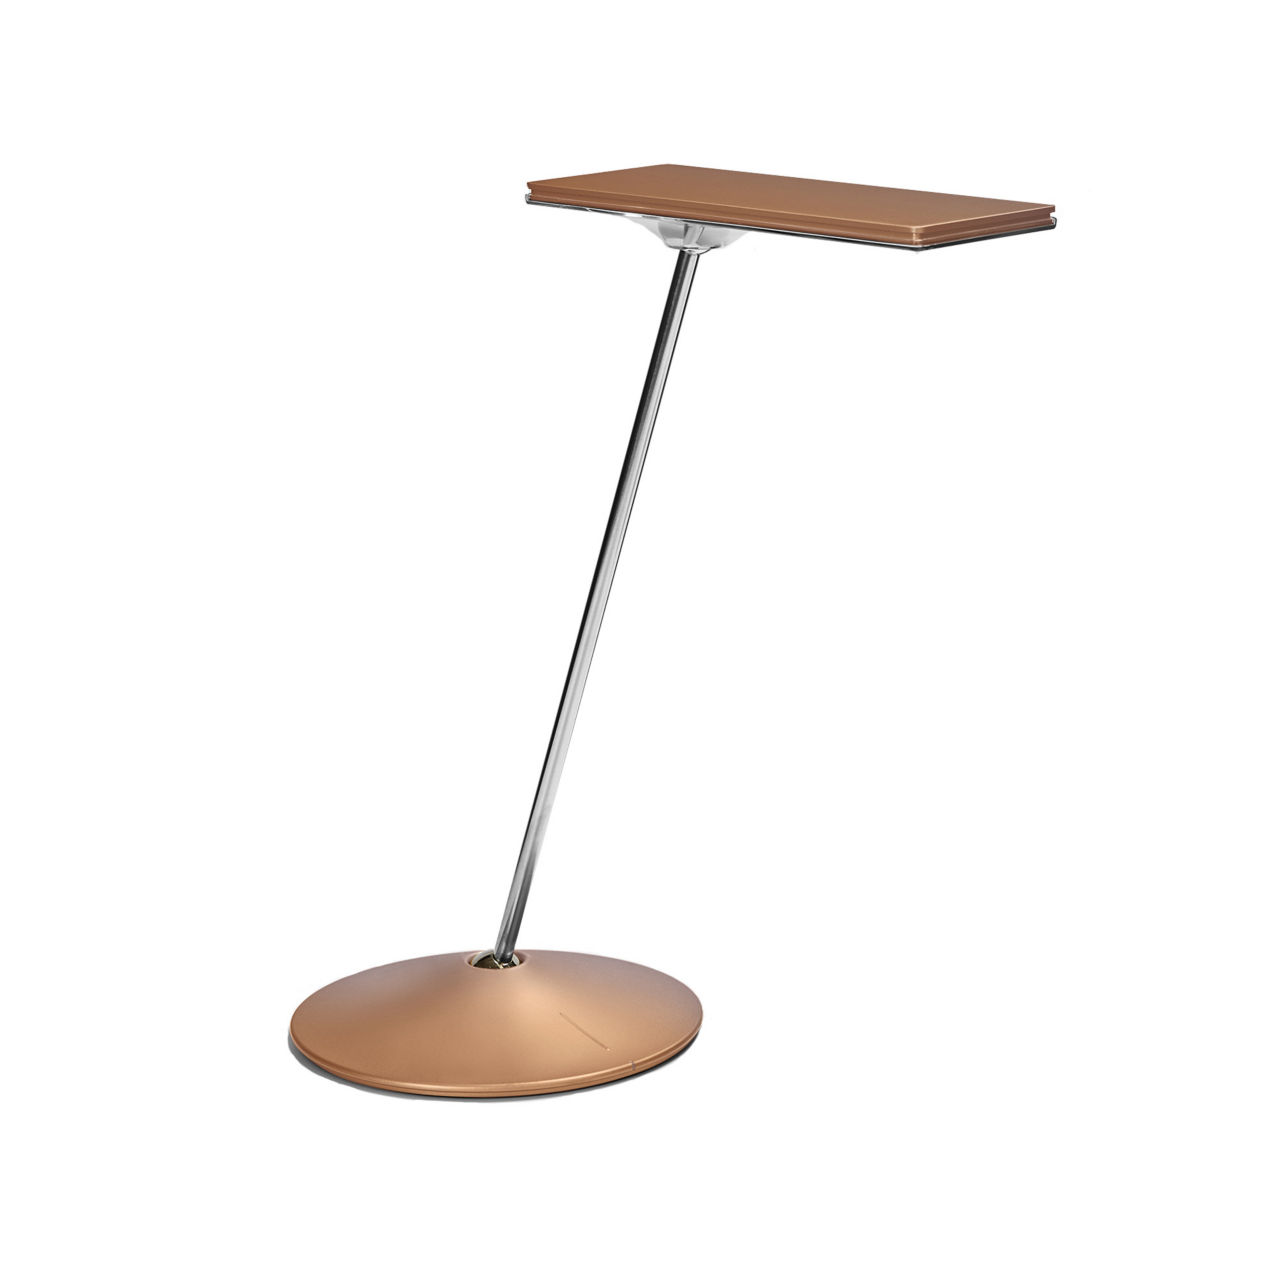 Horizon 20 Desk Lamp in Bronze Gold by Humanscale